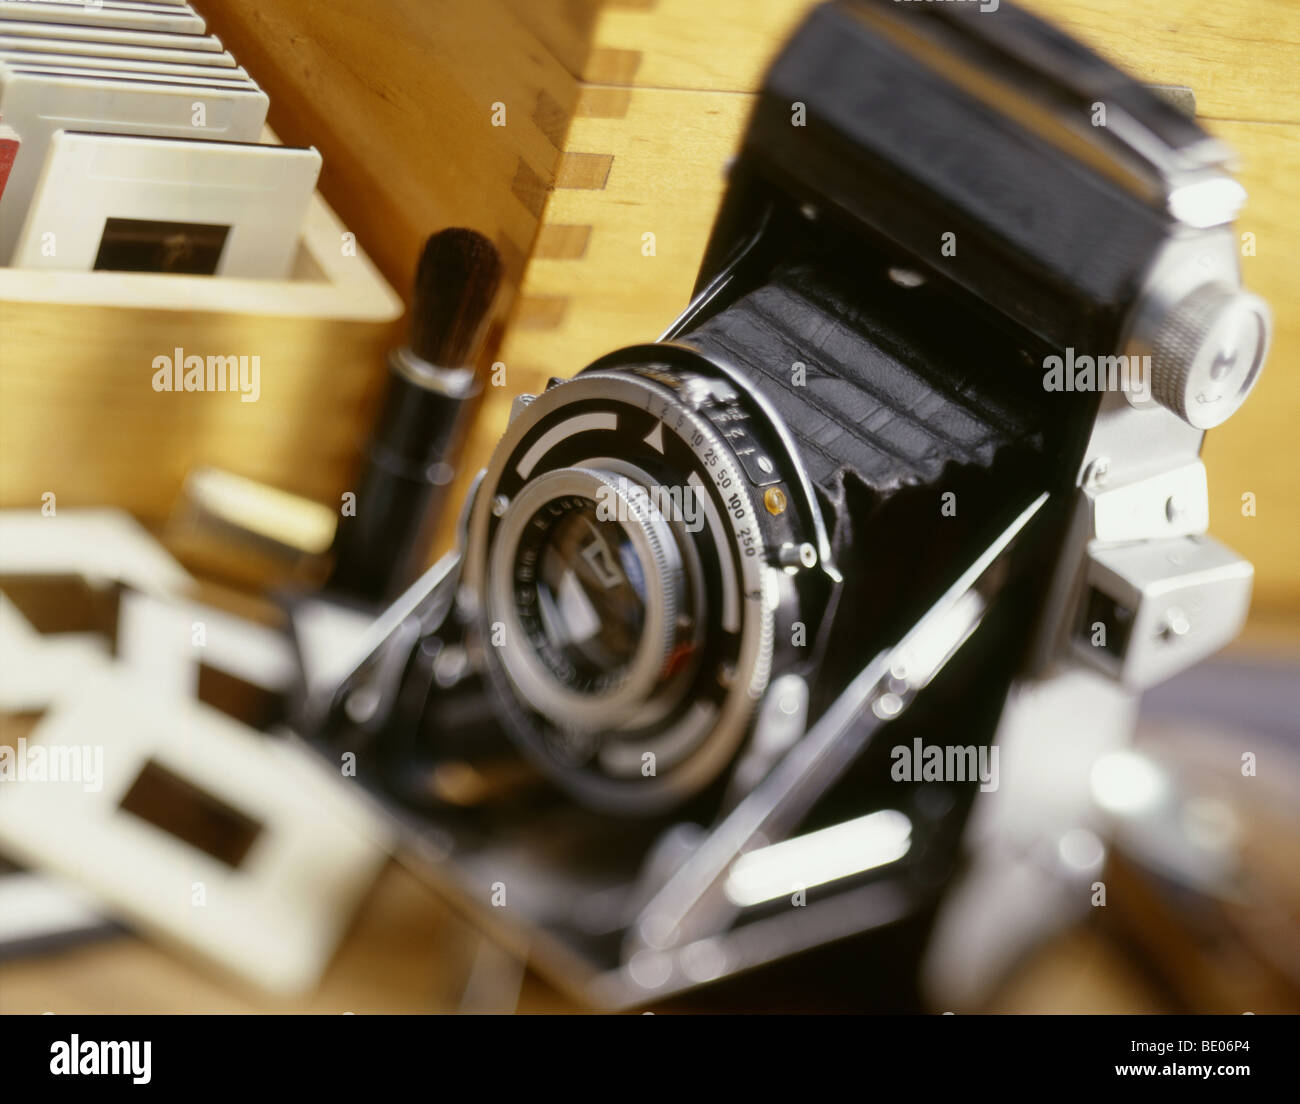 Nostalgique de la photographie Photo Stock